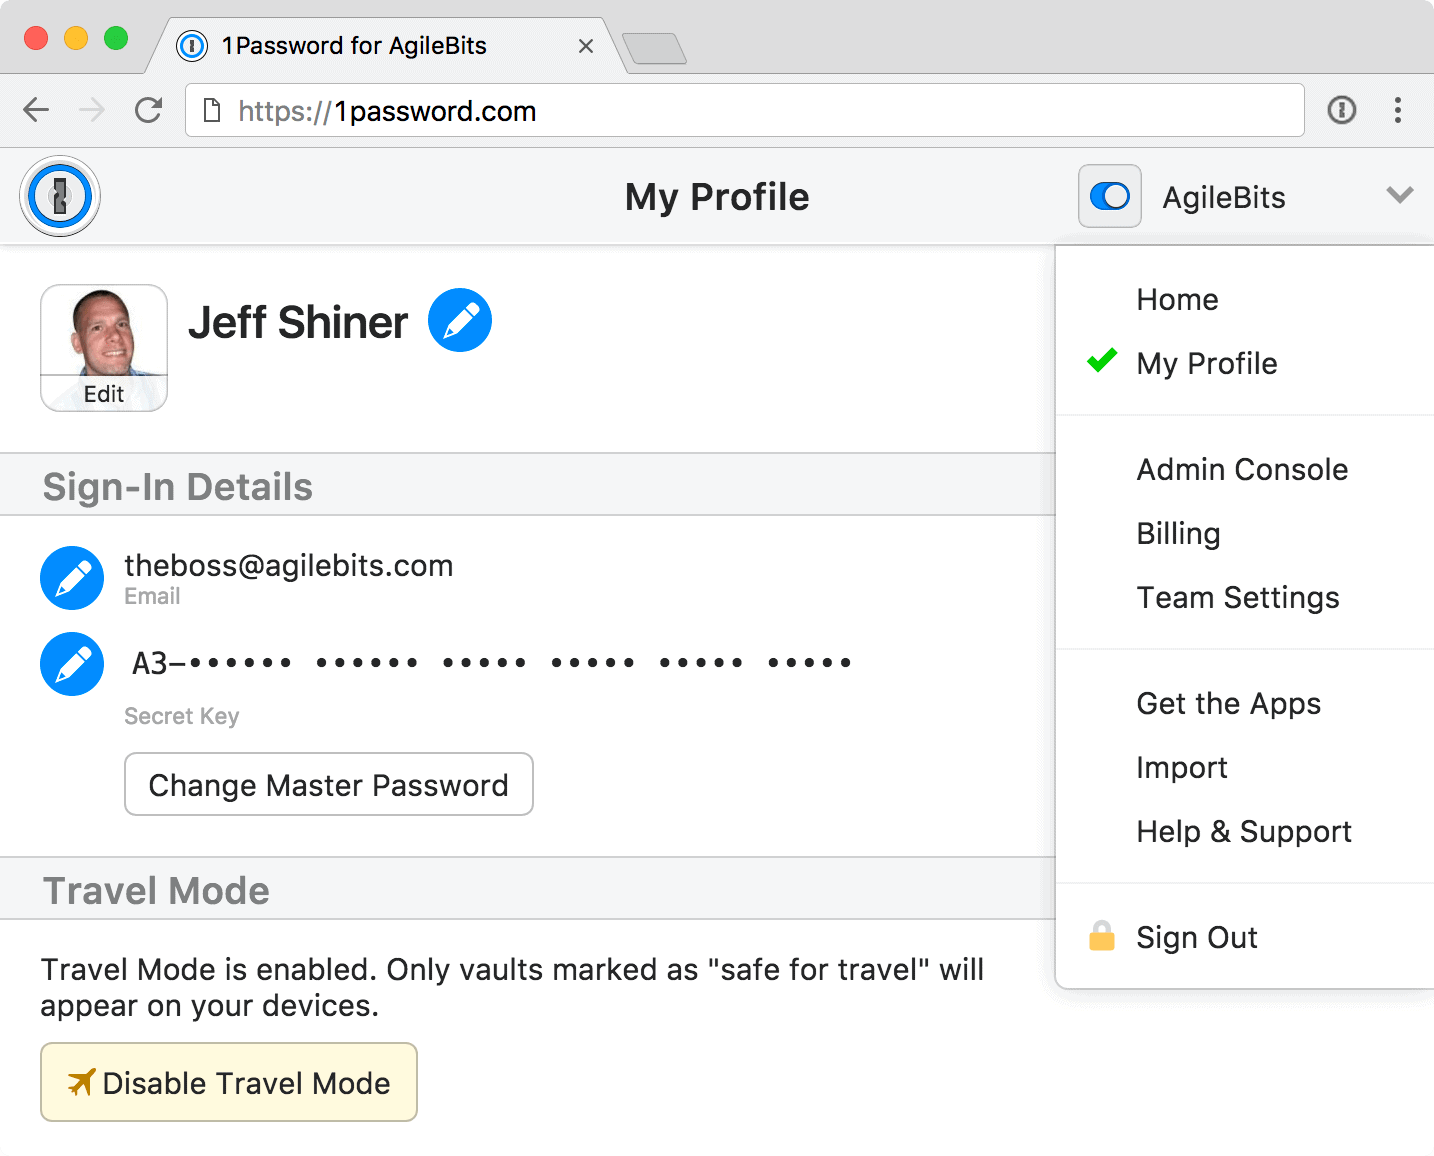 A look at 1Password's Travel Mode